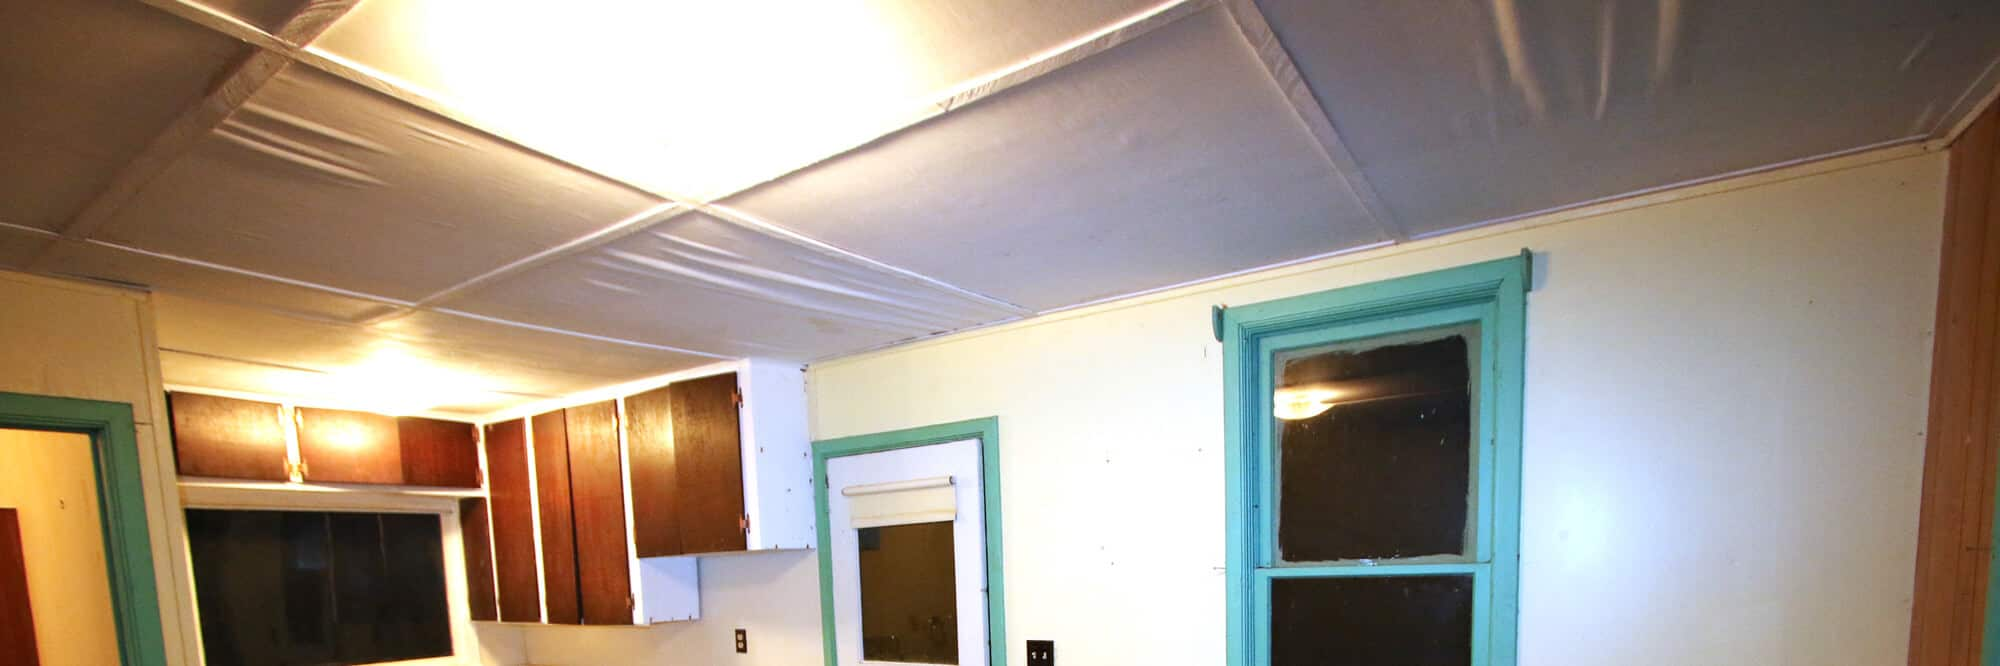 Micro-Unit-Renovation-13-cropped